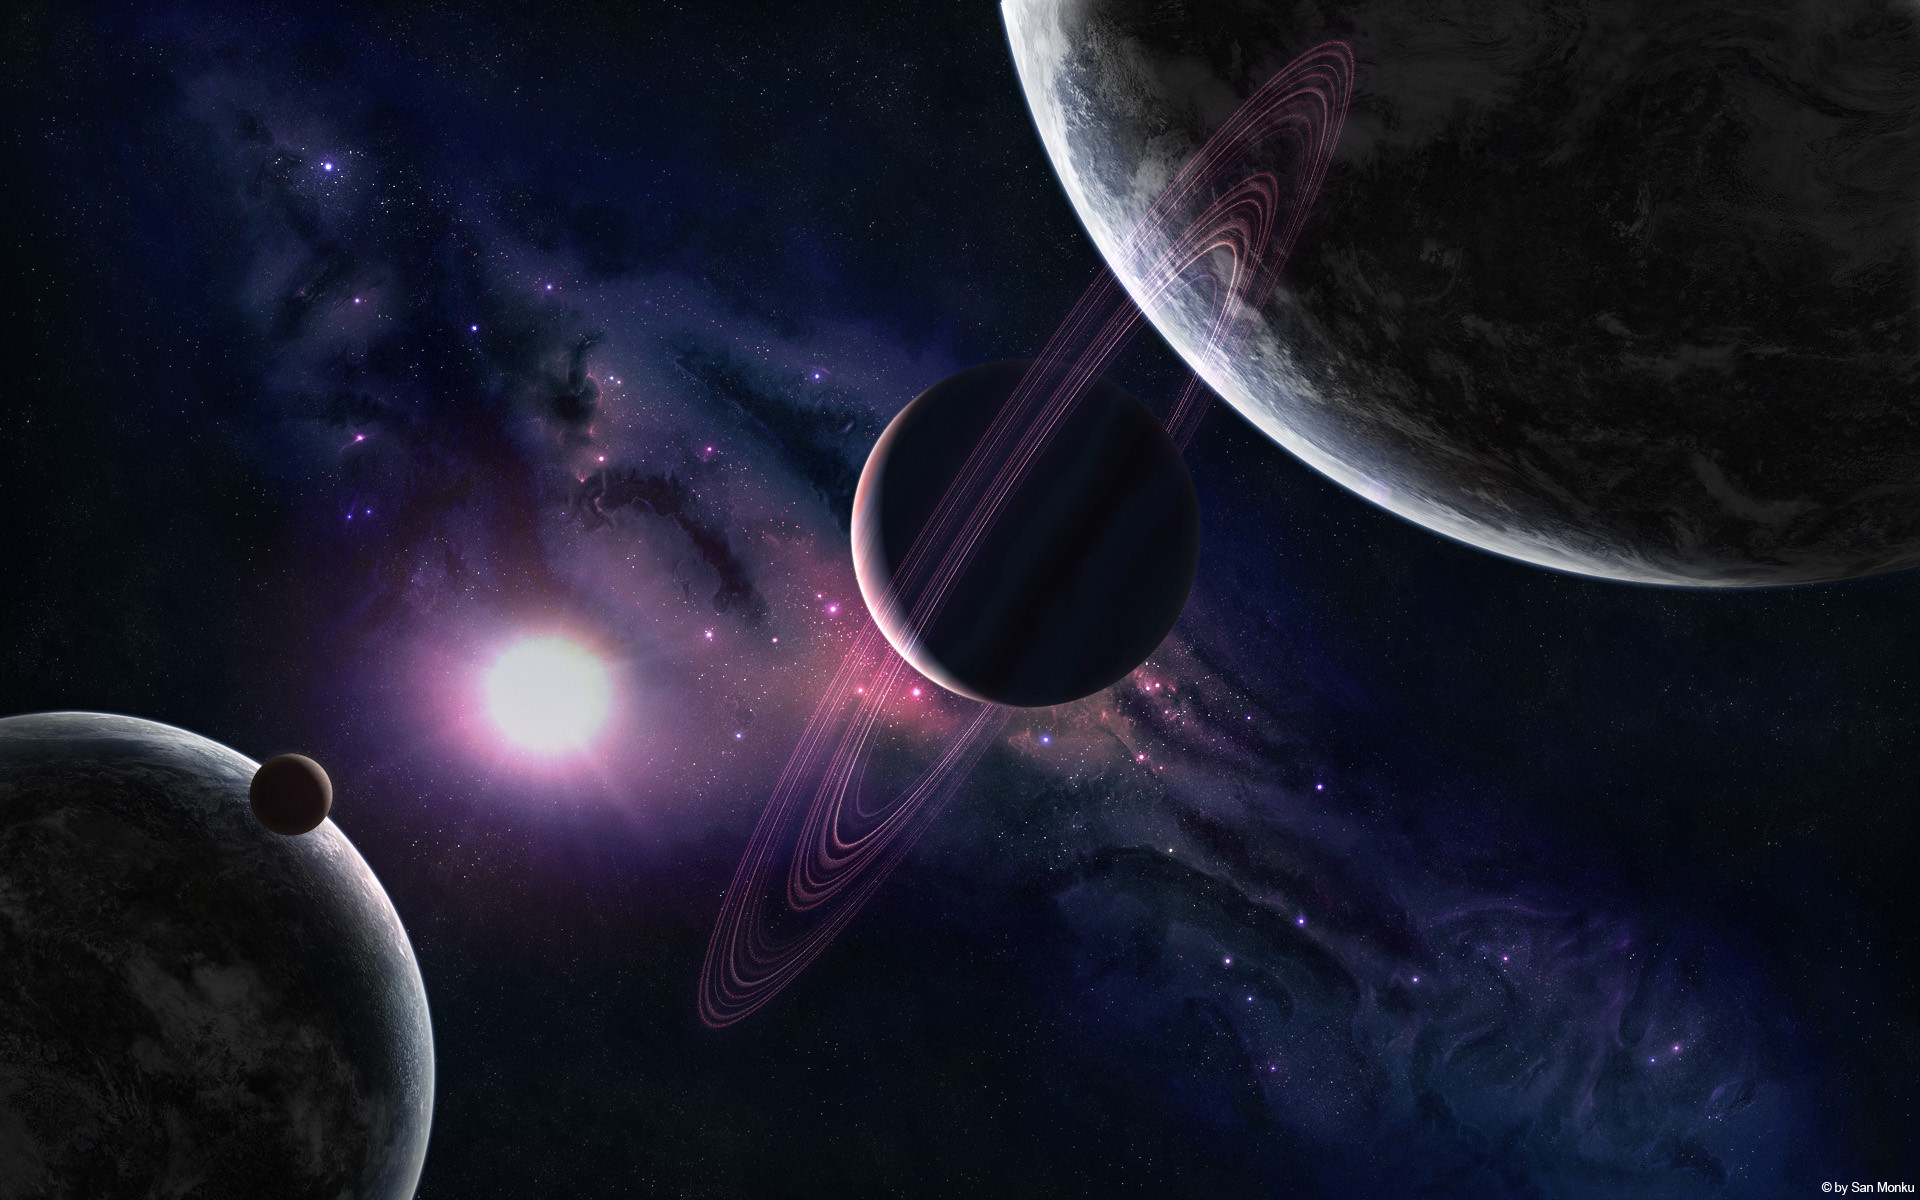 Space planet wallpaper Wallpapers – HD Wallpapers 86471